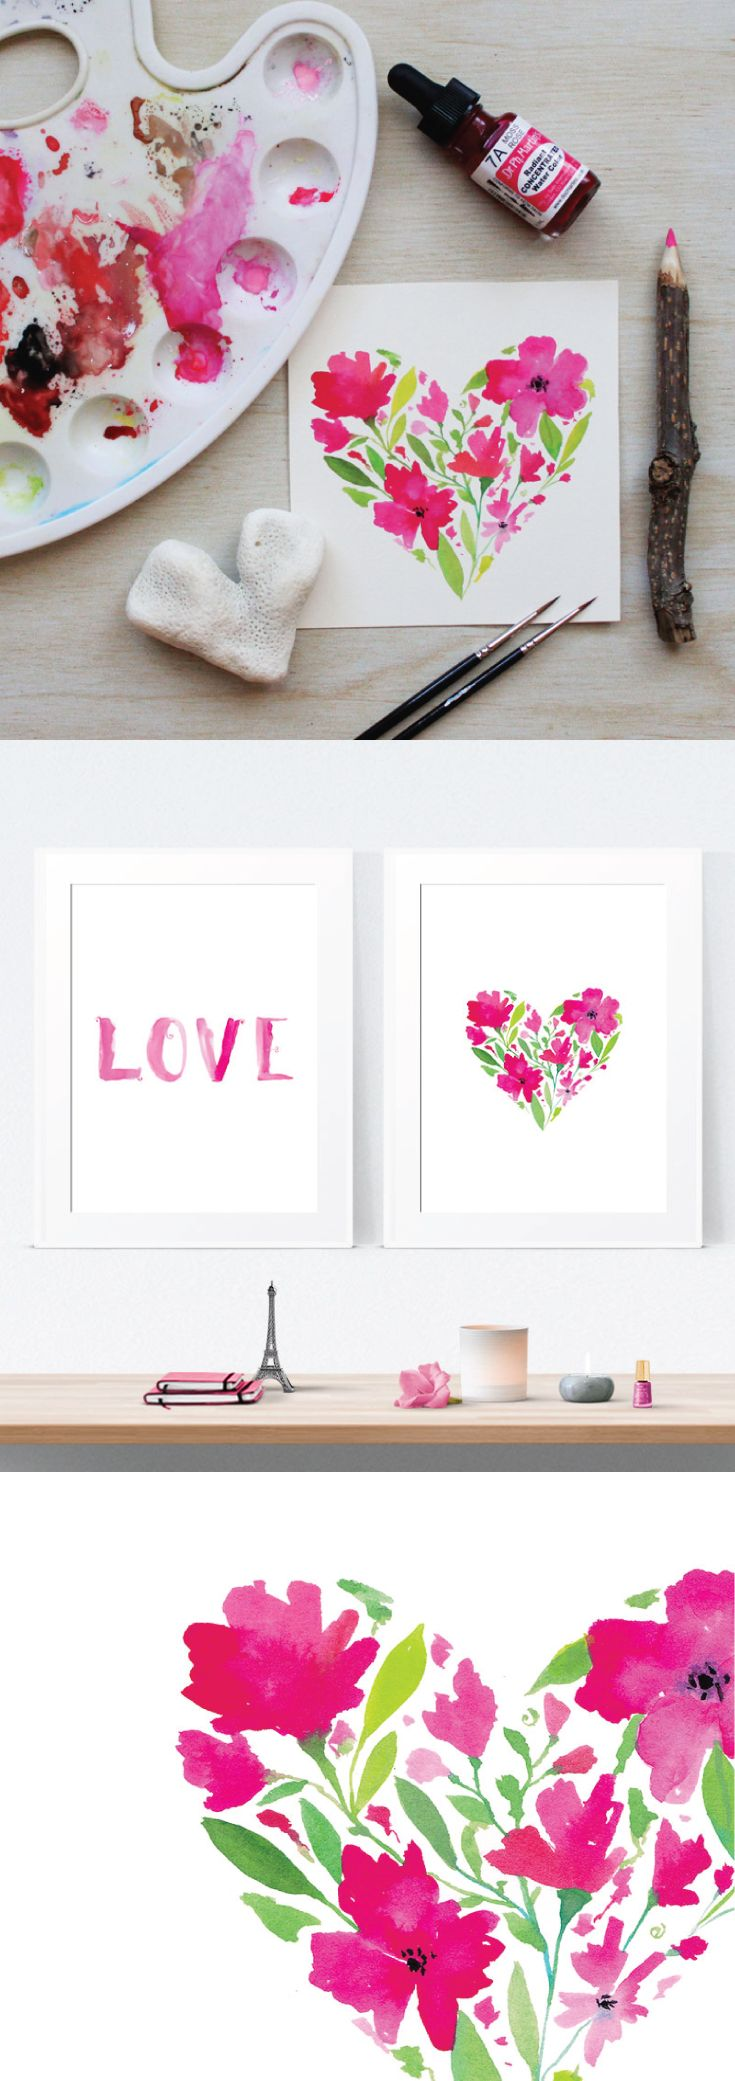 LOVE | Printable Wall Art | Watercolour Floral Heart Painting + Typogrpahy Brush Lettering by PRINTSPIRING | Instant Download